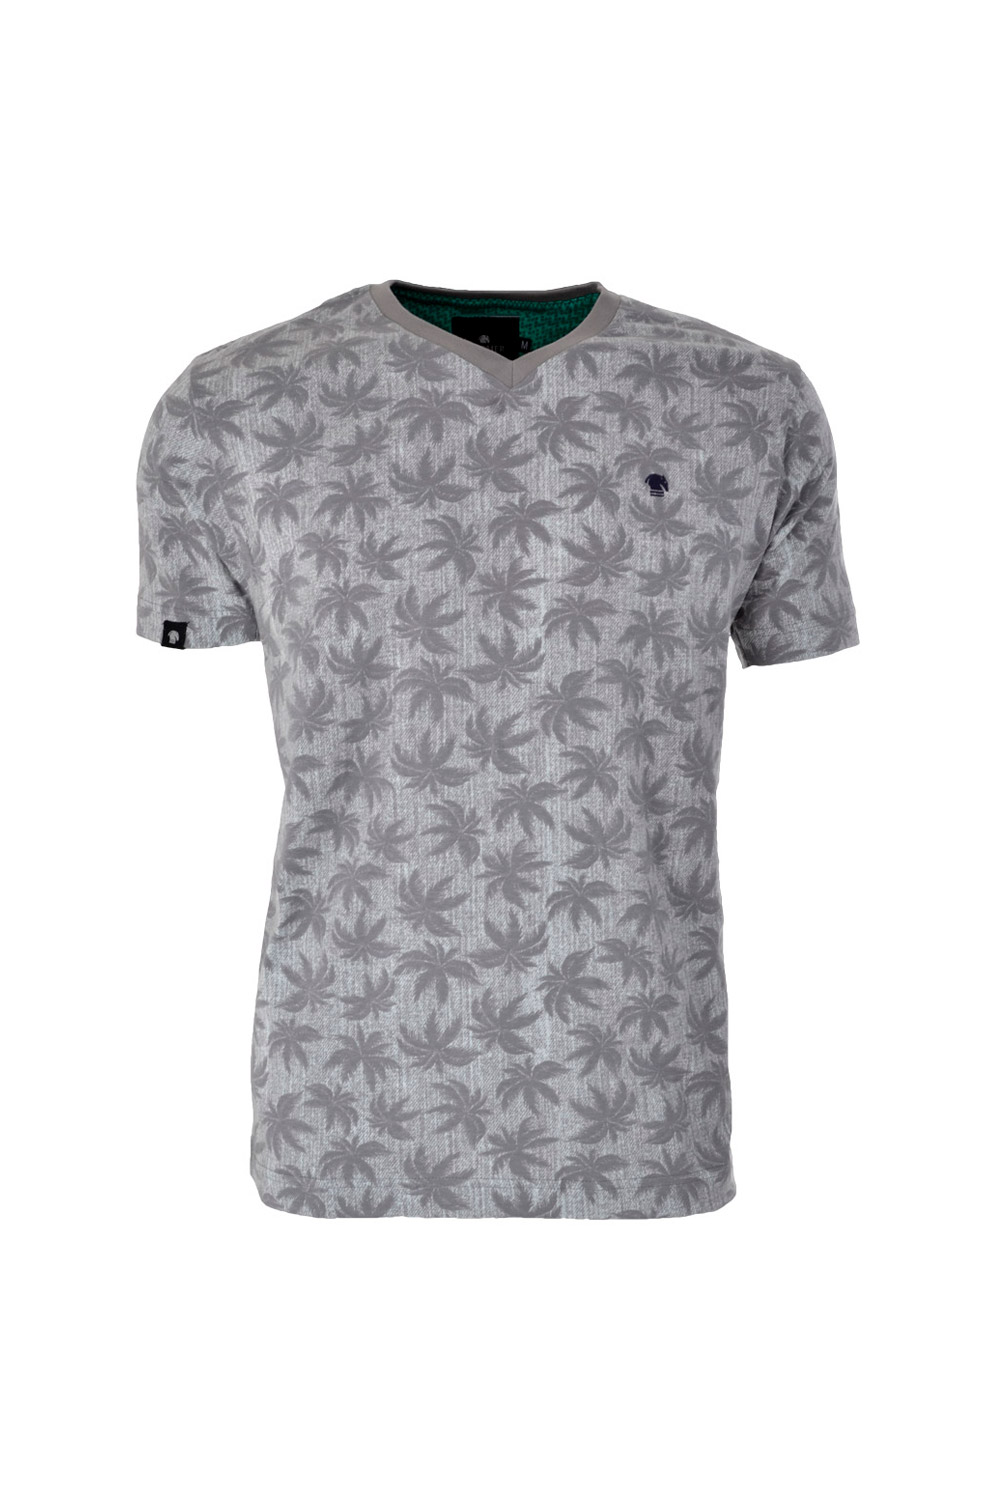 CAMISETA MC BLUES SUPER SLIM ALGODAO GOLA V ESTAMPA CINZA CLARO